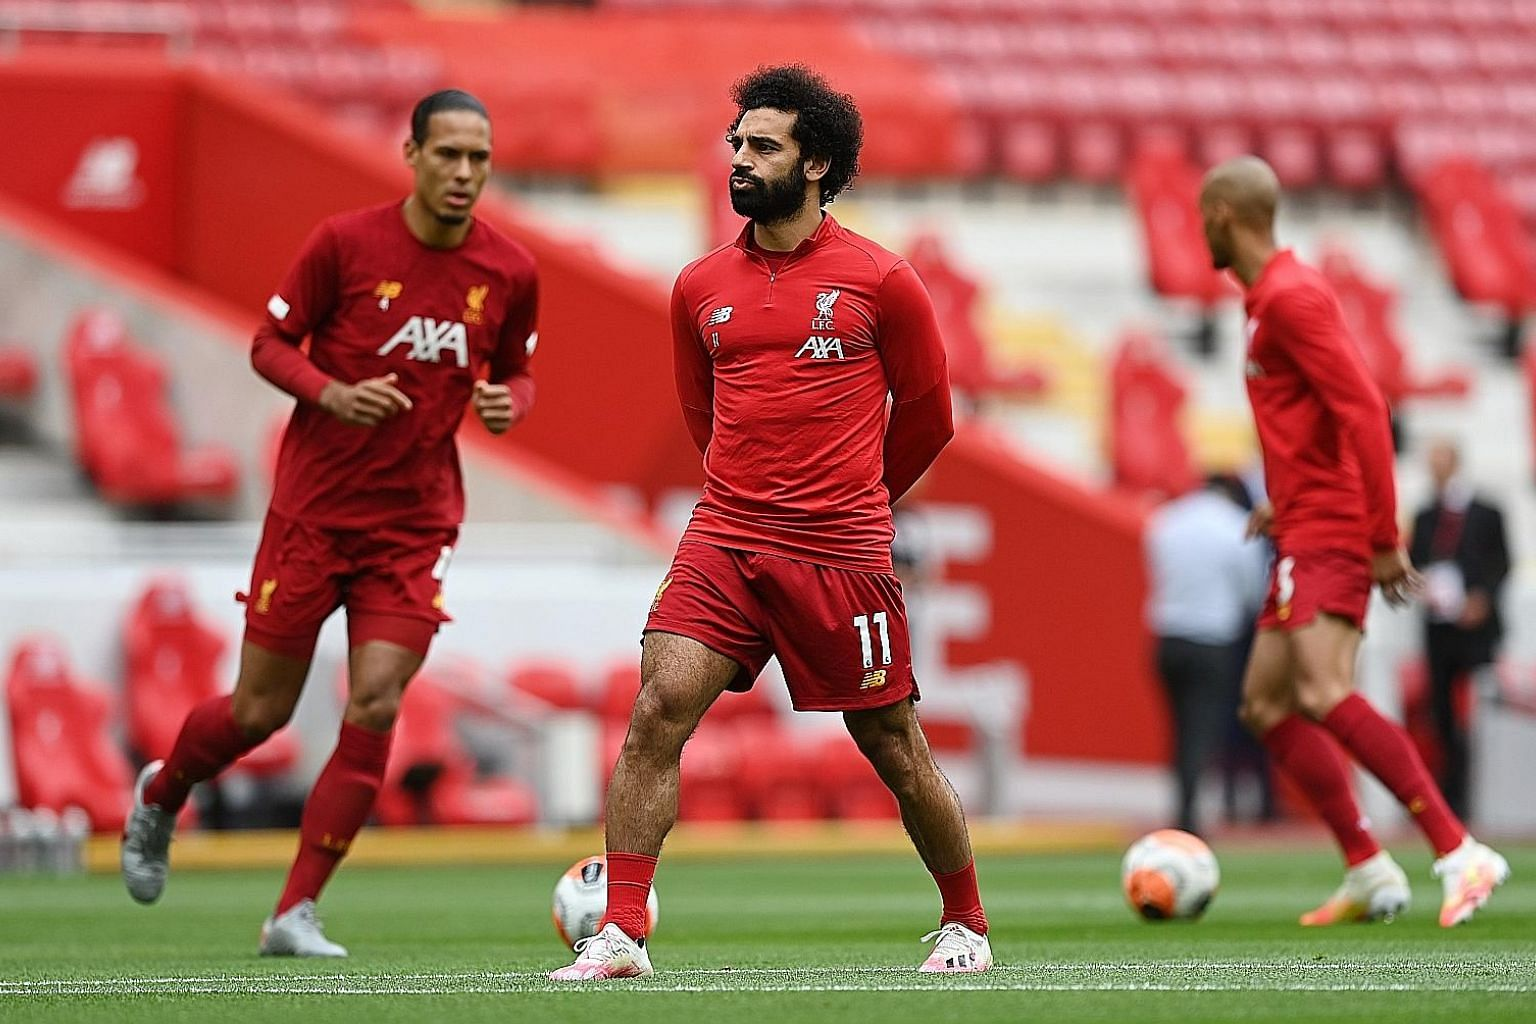 Right: Liverpool's Virgil van Dijk and Mohamed Salah warming up before a match. The Egyptian star is one of the key contributors to the Reds' first English title in 30 years. Below: Liverpool manager Jurgen Klopp addresses the media at a virtual pres